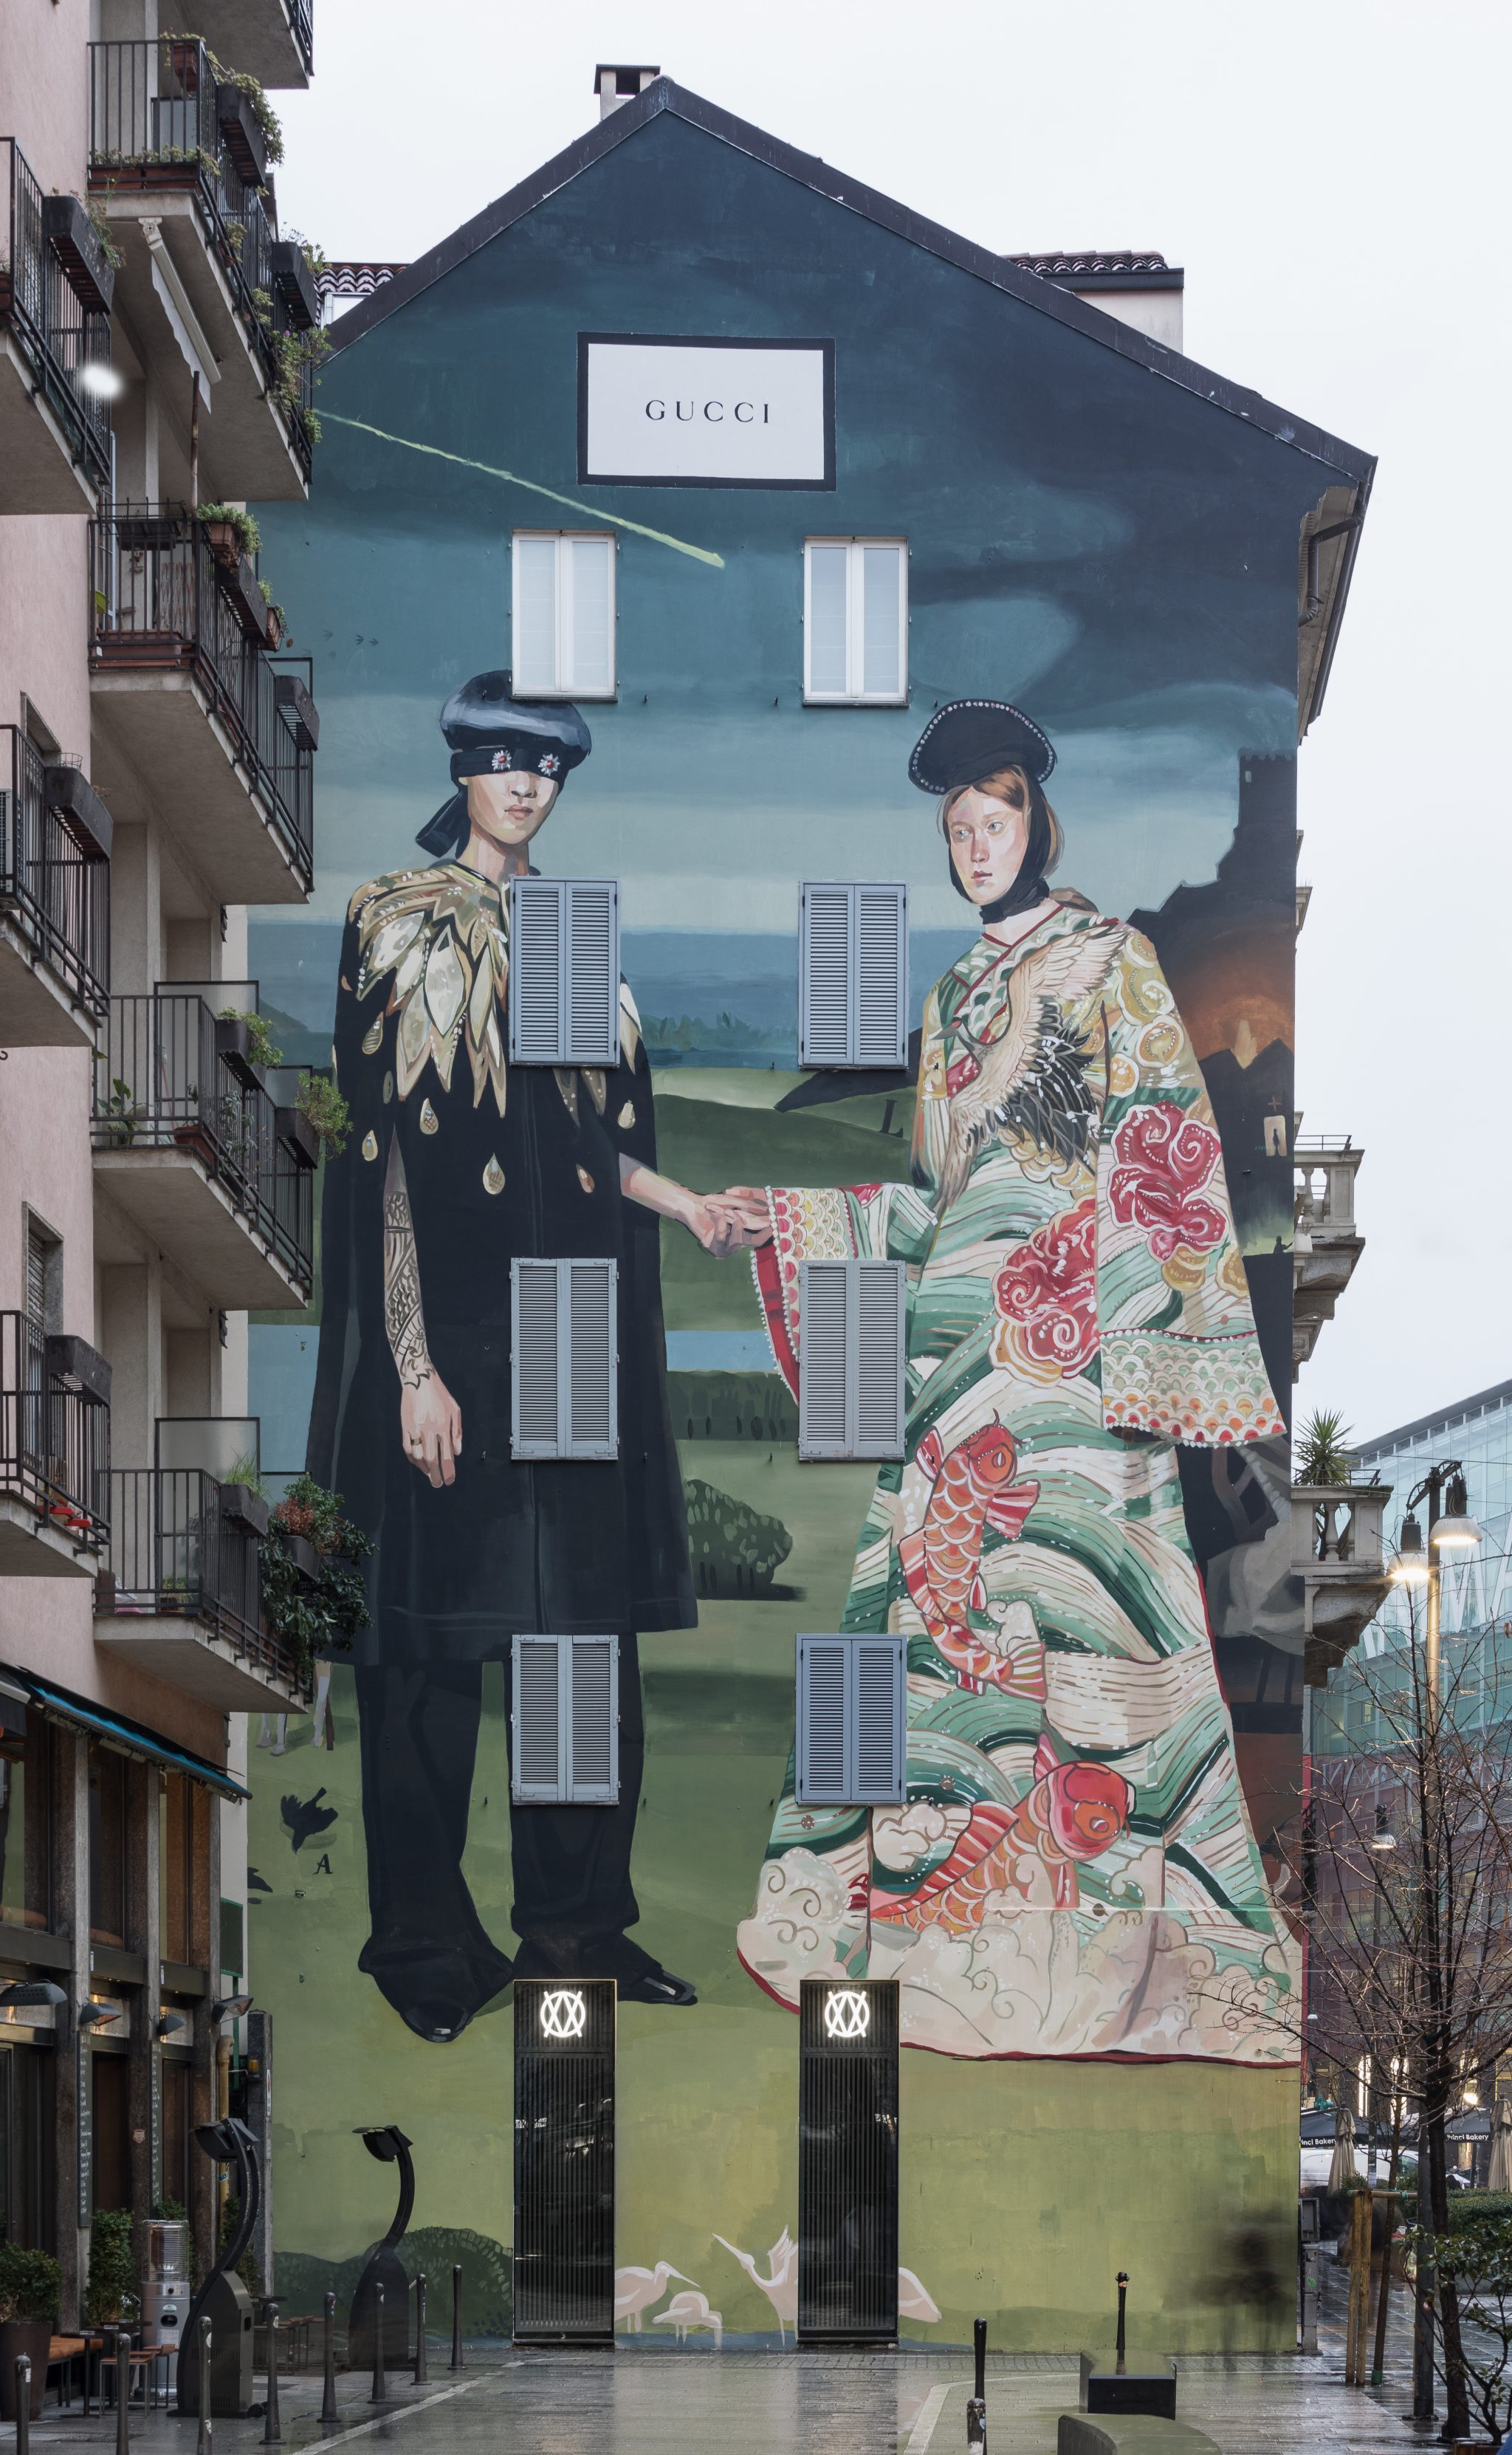 Ignasi Monreal Gucci mural piece in Milan. Photo credits: Delfino Sisto Legani and Marco Cappelletti